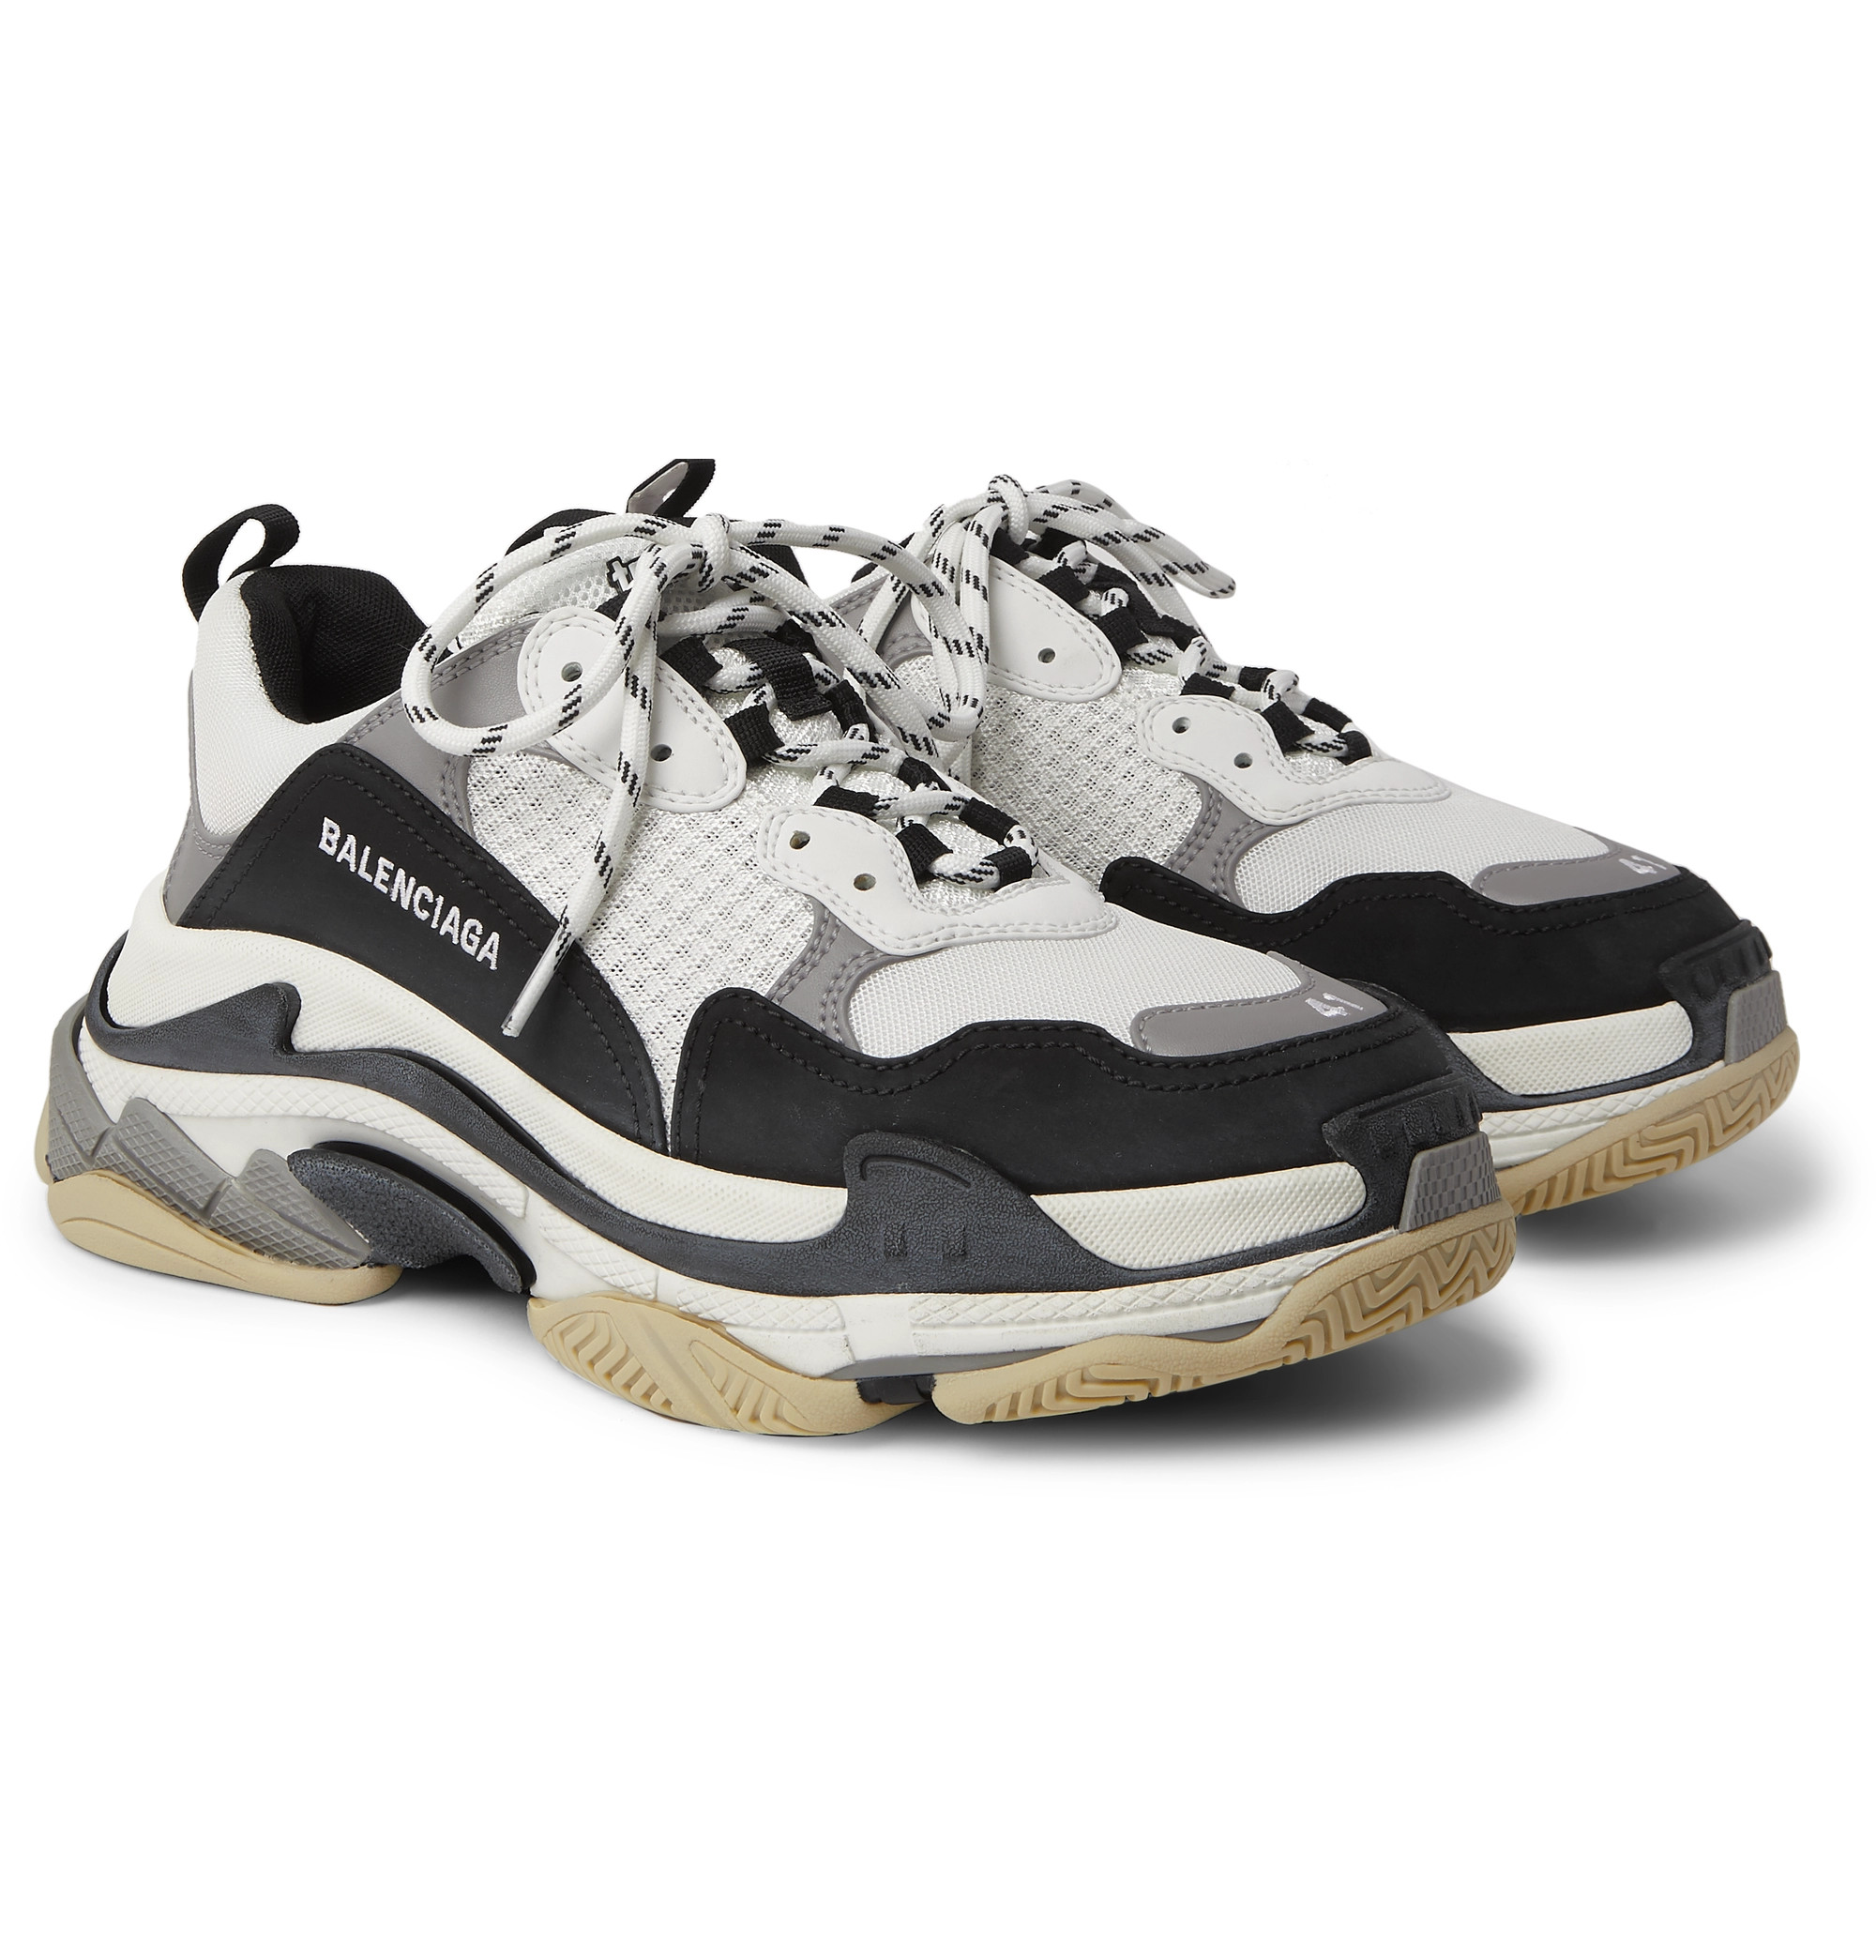 Triple S Mesh, Nubuck and Leather